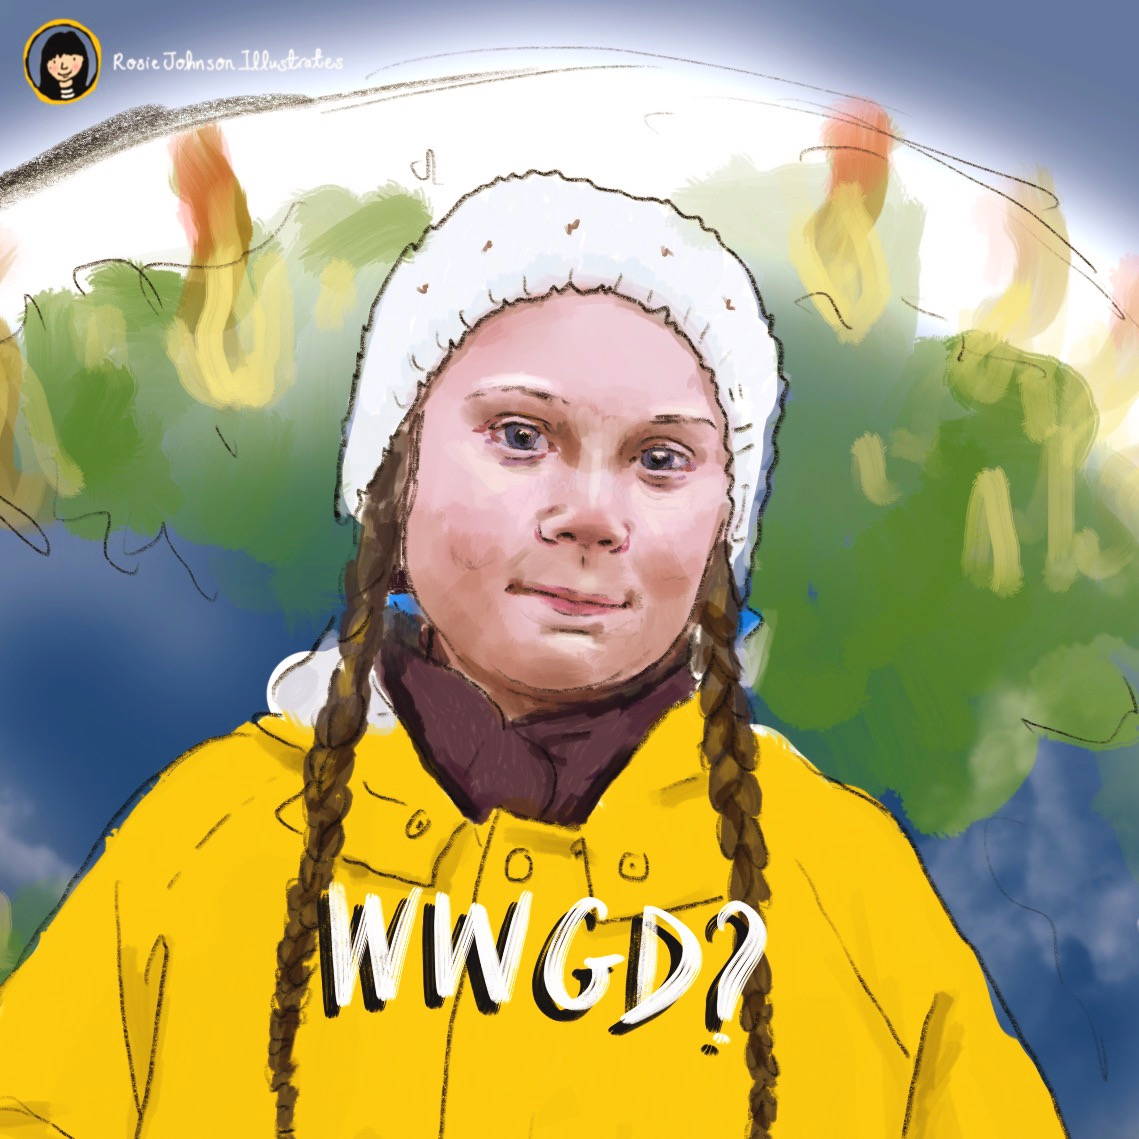 My Greta Thunberg illustration in celebration of her call to arms.